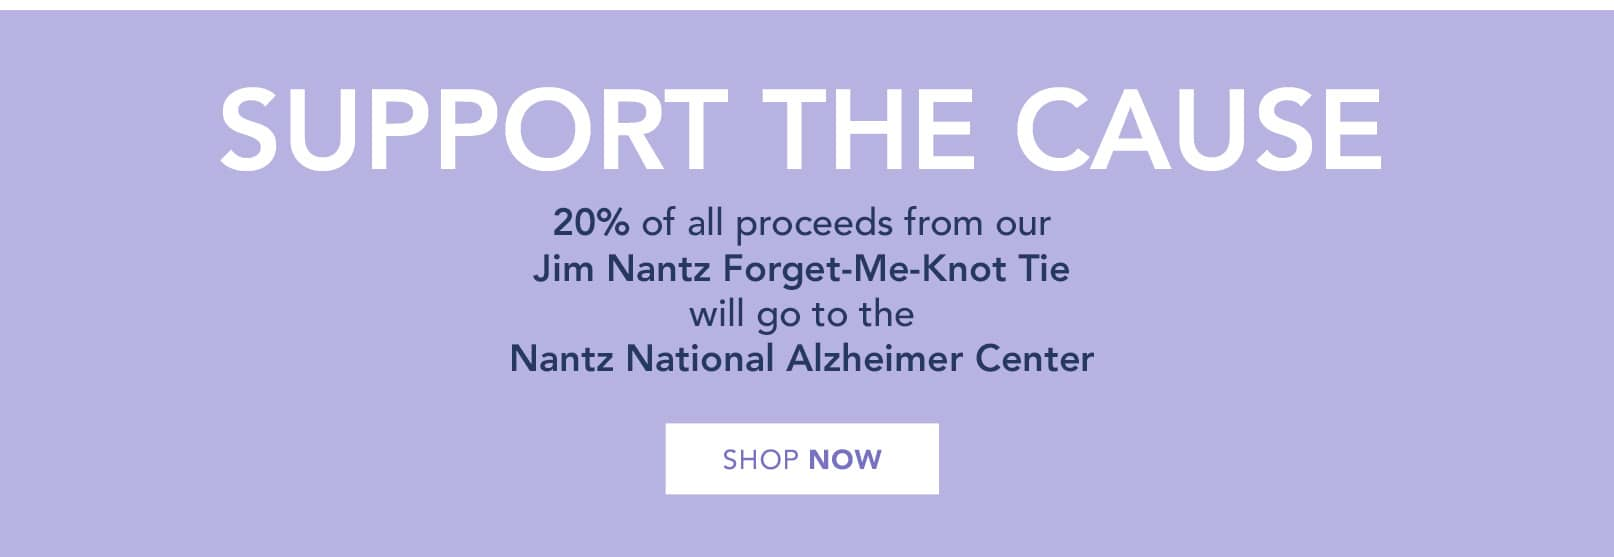 Jim Nantz Forget-Me-Knot Tie. 20% of the proceeds from the tie will go to the Nantz National Alzheimer Center. Shop now.